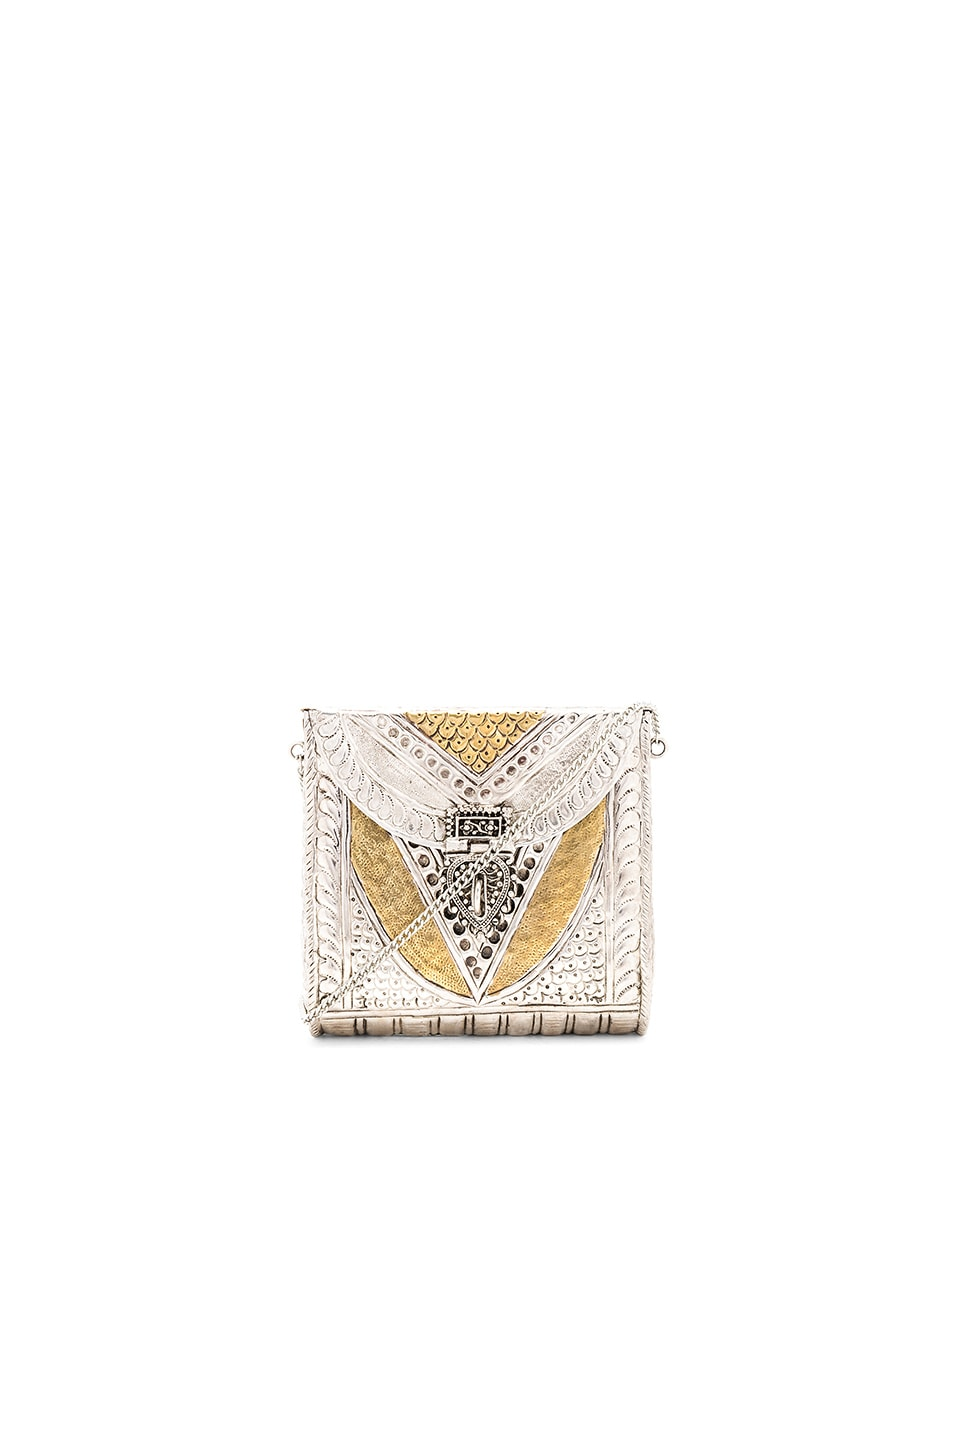 From St Xavier Munro Clutch in Gold & Silver